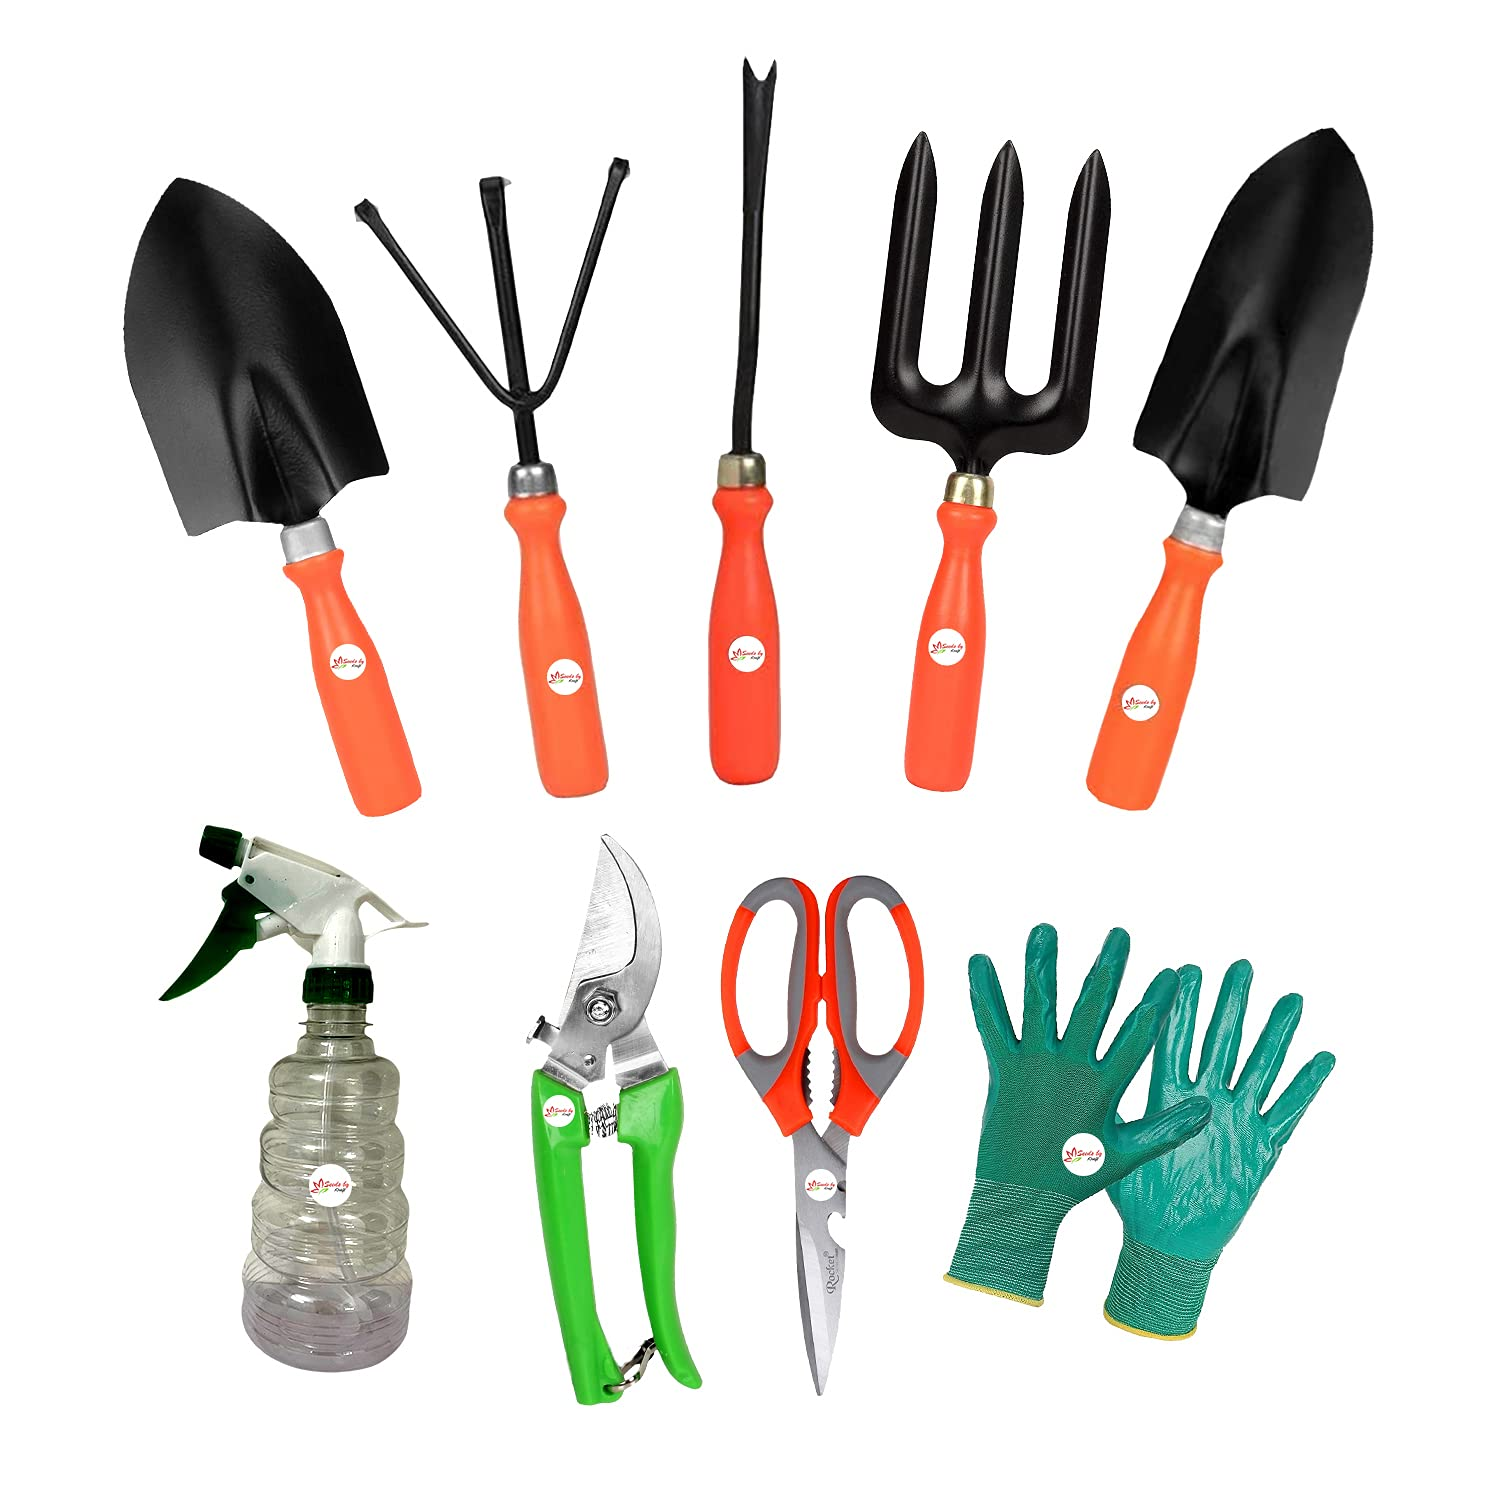 Kraft Seeds Garden Tool Kit with Scissors, Pruner and One Pair of Hand Gloves Comfortable and Durable with Spray Pump 500ml (Set of 9) Free Veg Seed Packet